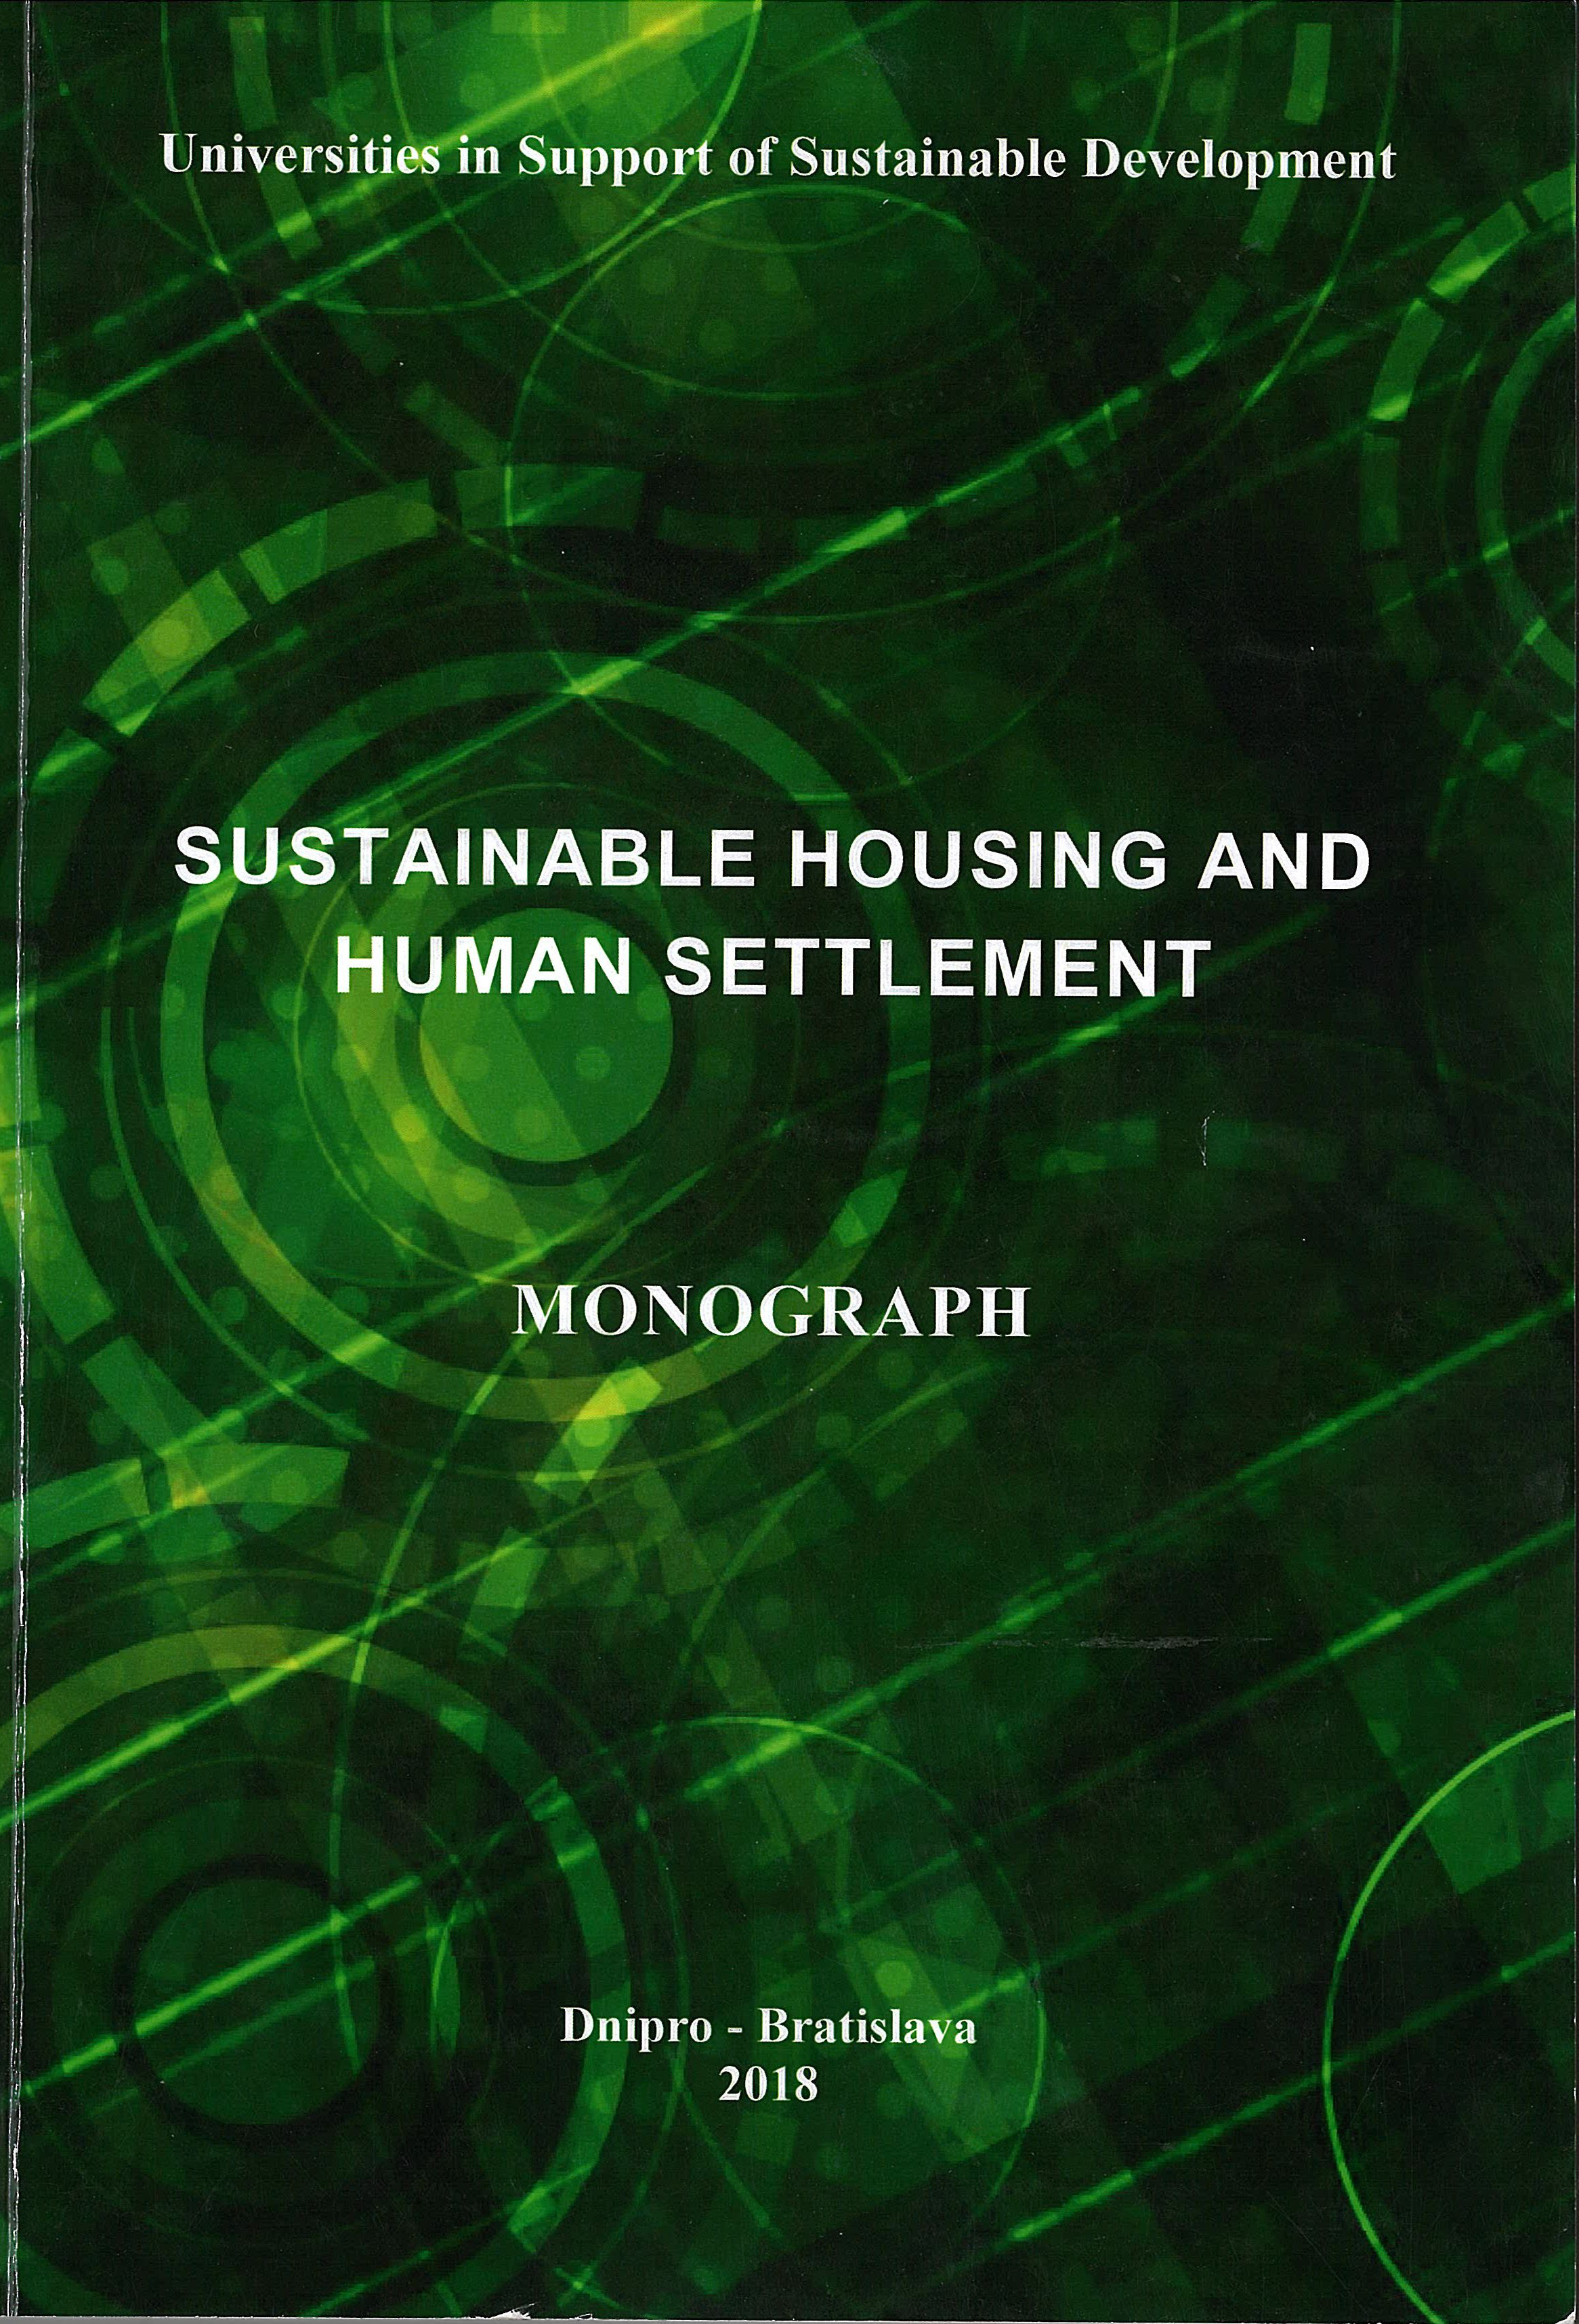 Sustainable housing and human settlement: Monograph, 2018